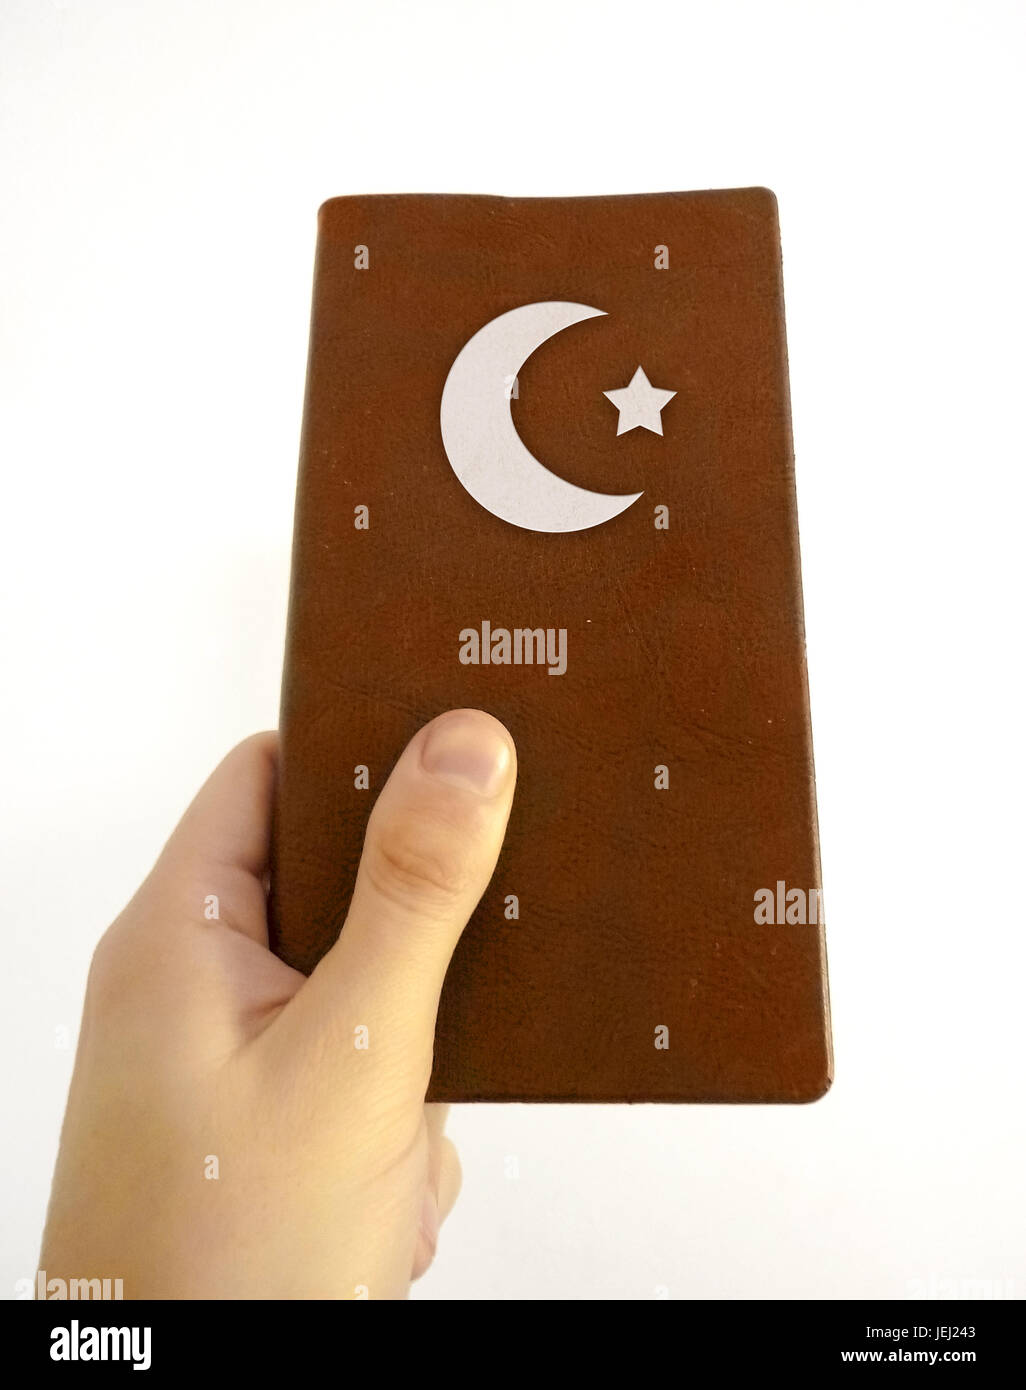 Hand Holding Islamic Book - Stock Image